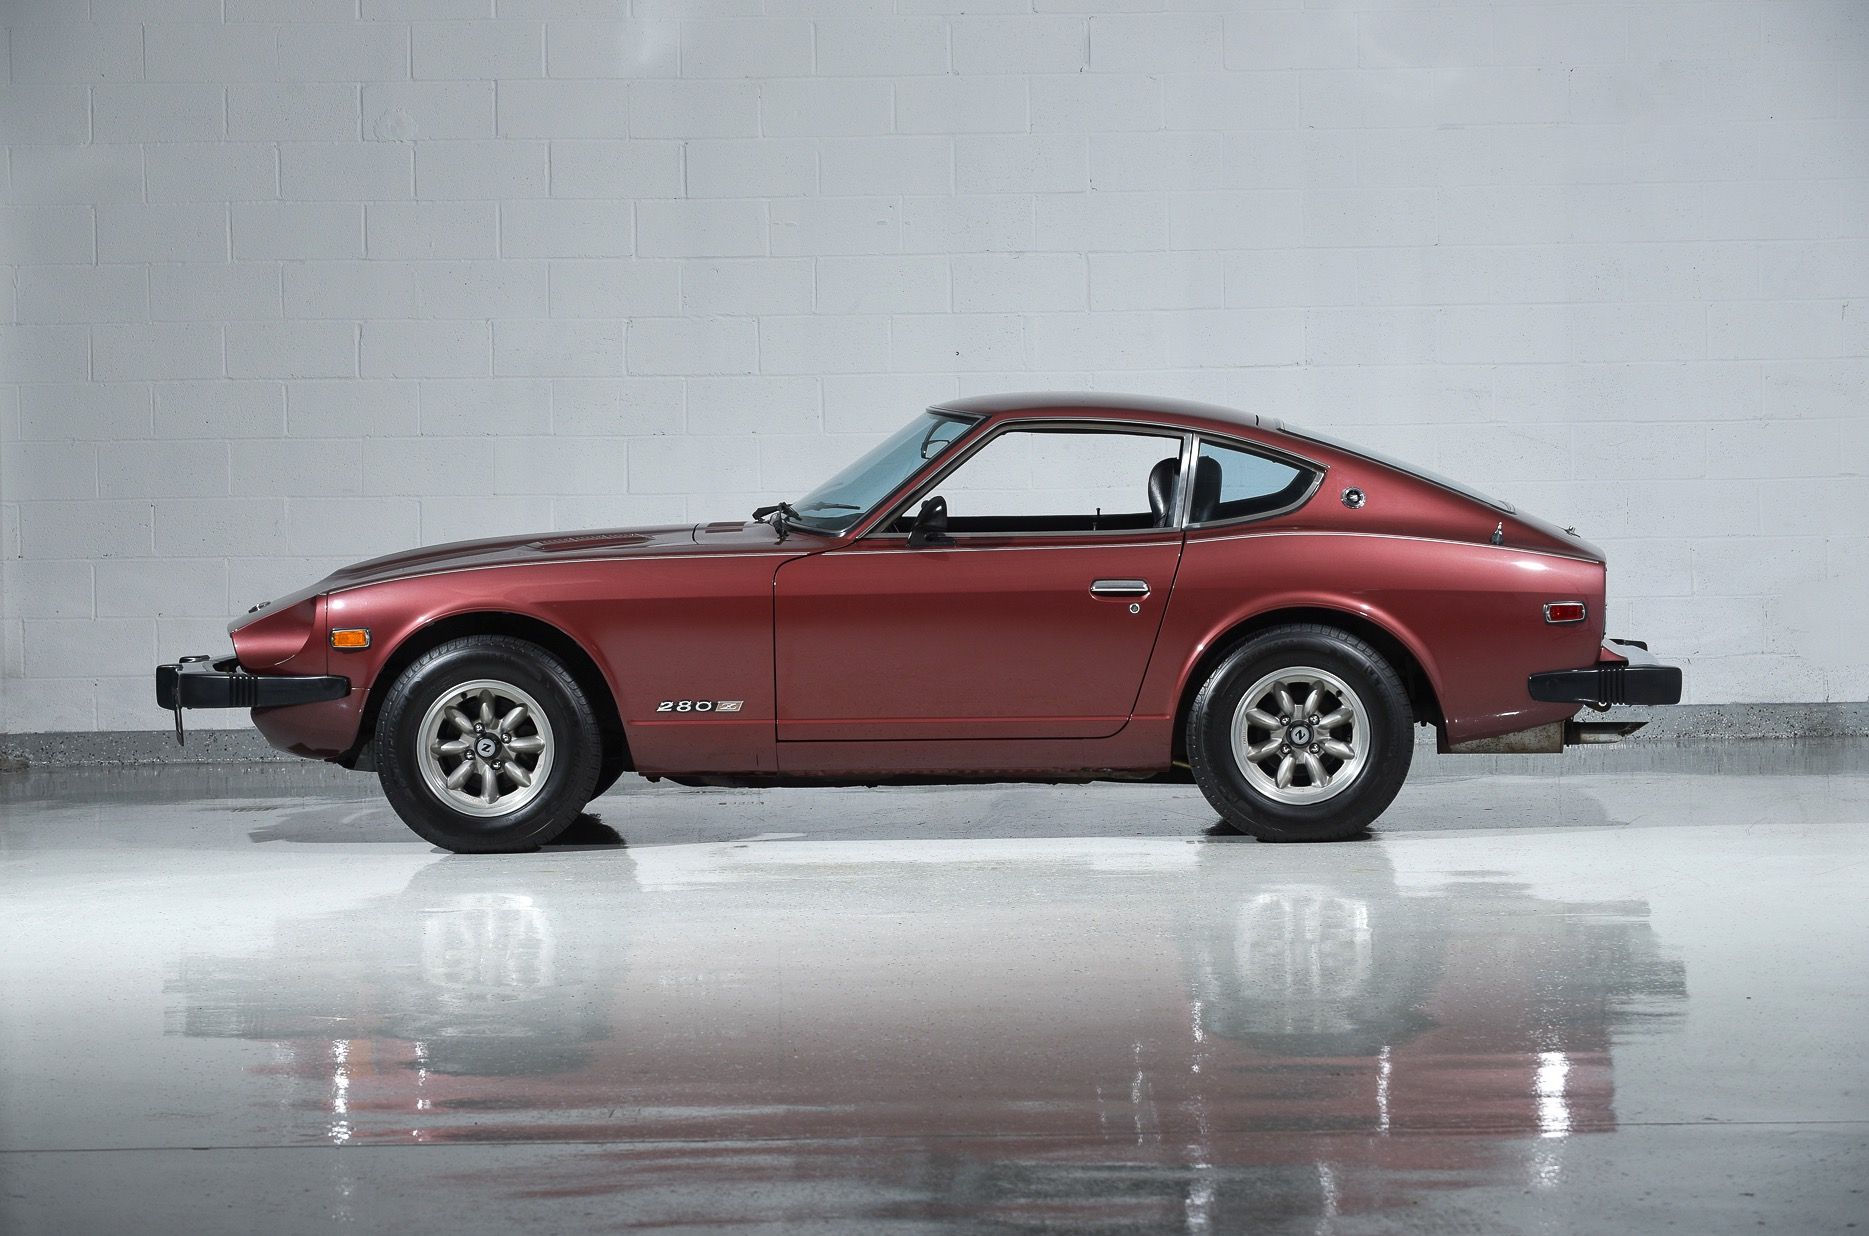 Web Finds For Sale 1978 Datsun 280z Second Daily Classics